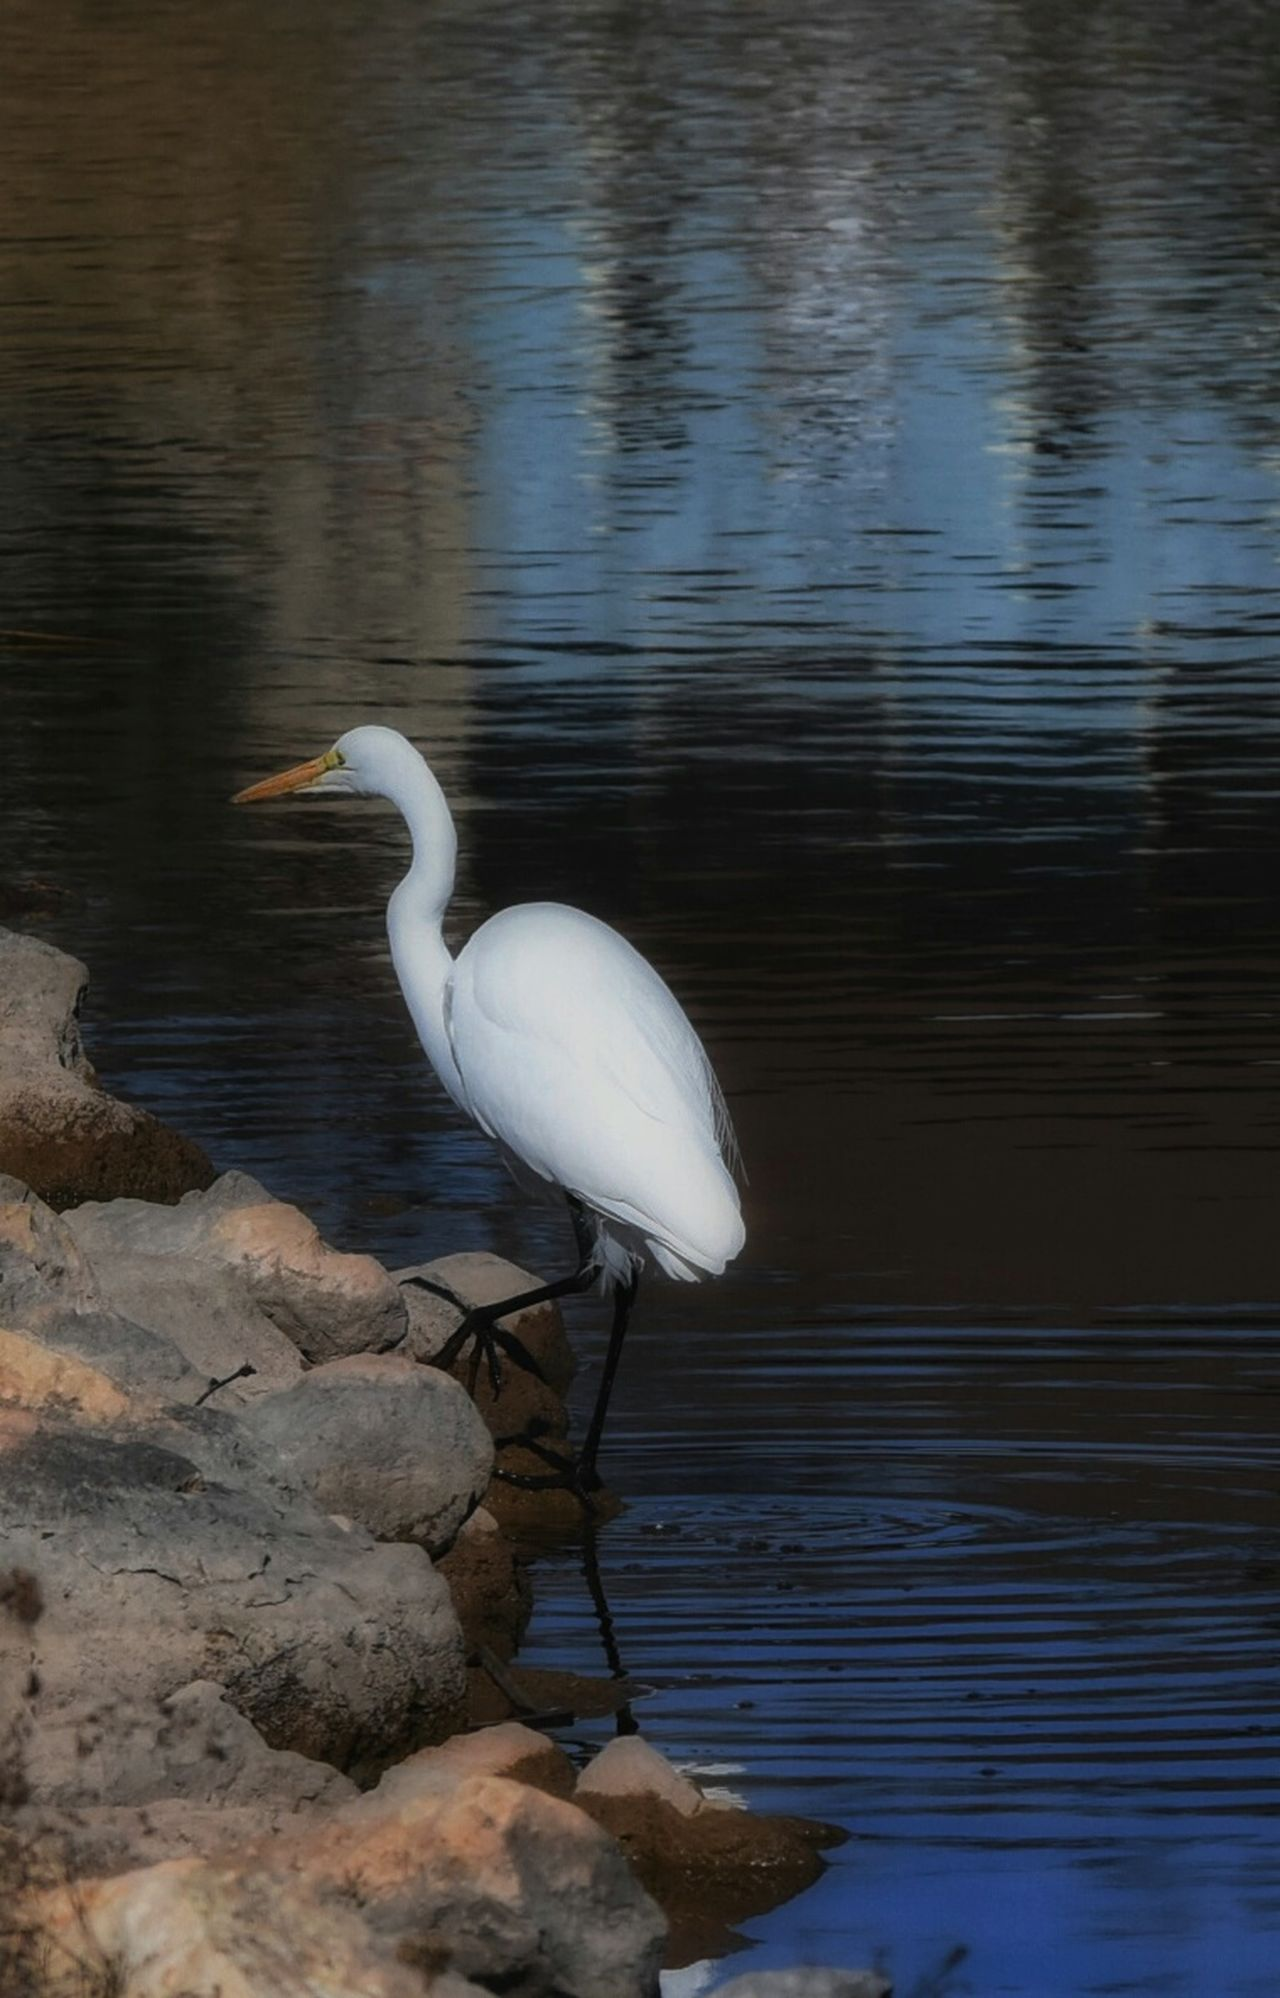 Animals In The Wild Animal Themes One Animal Bird Great Egret Water This Week On Eyeem Eyeemphotography Texas Photographer Nature Close-up Animal Body Part Animals In The Wild San Angelo San Angelo Texas animal wildlife Lake Egret No People Outdoors Nature Day